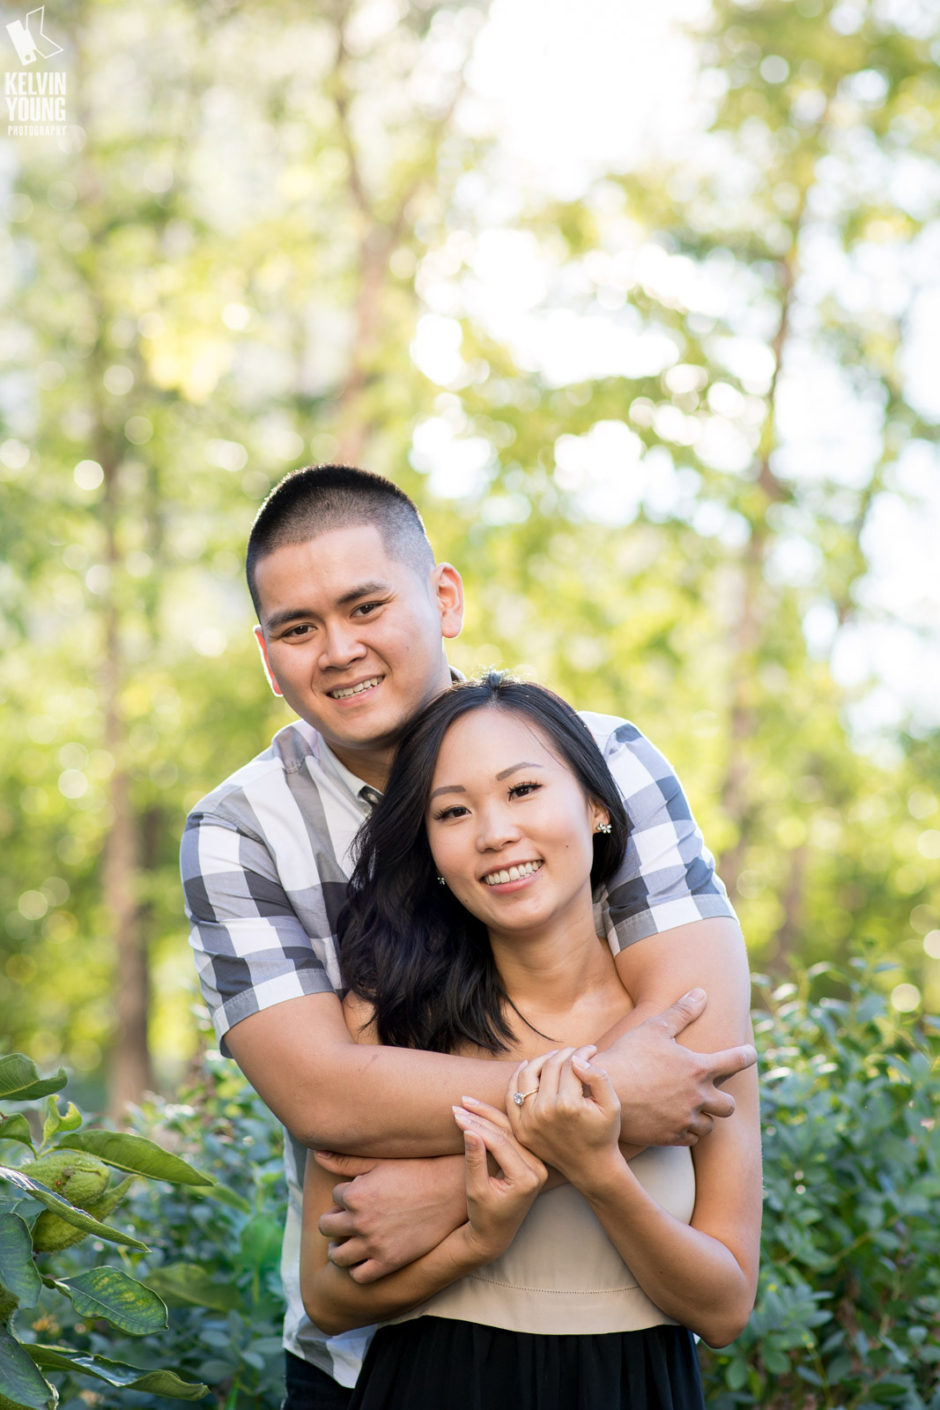 kelvin-young-photography_lydia-kevin-toronto-engagement-photos_002